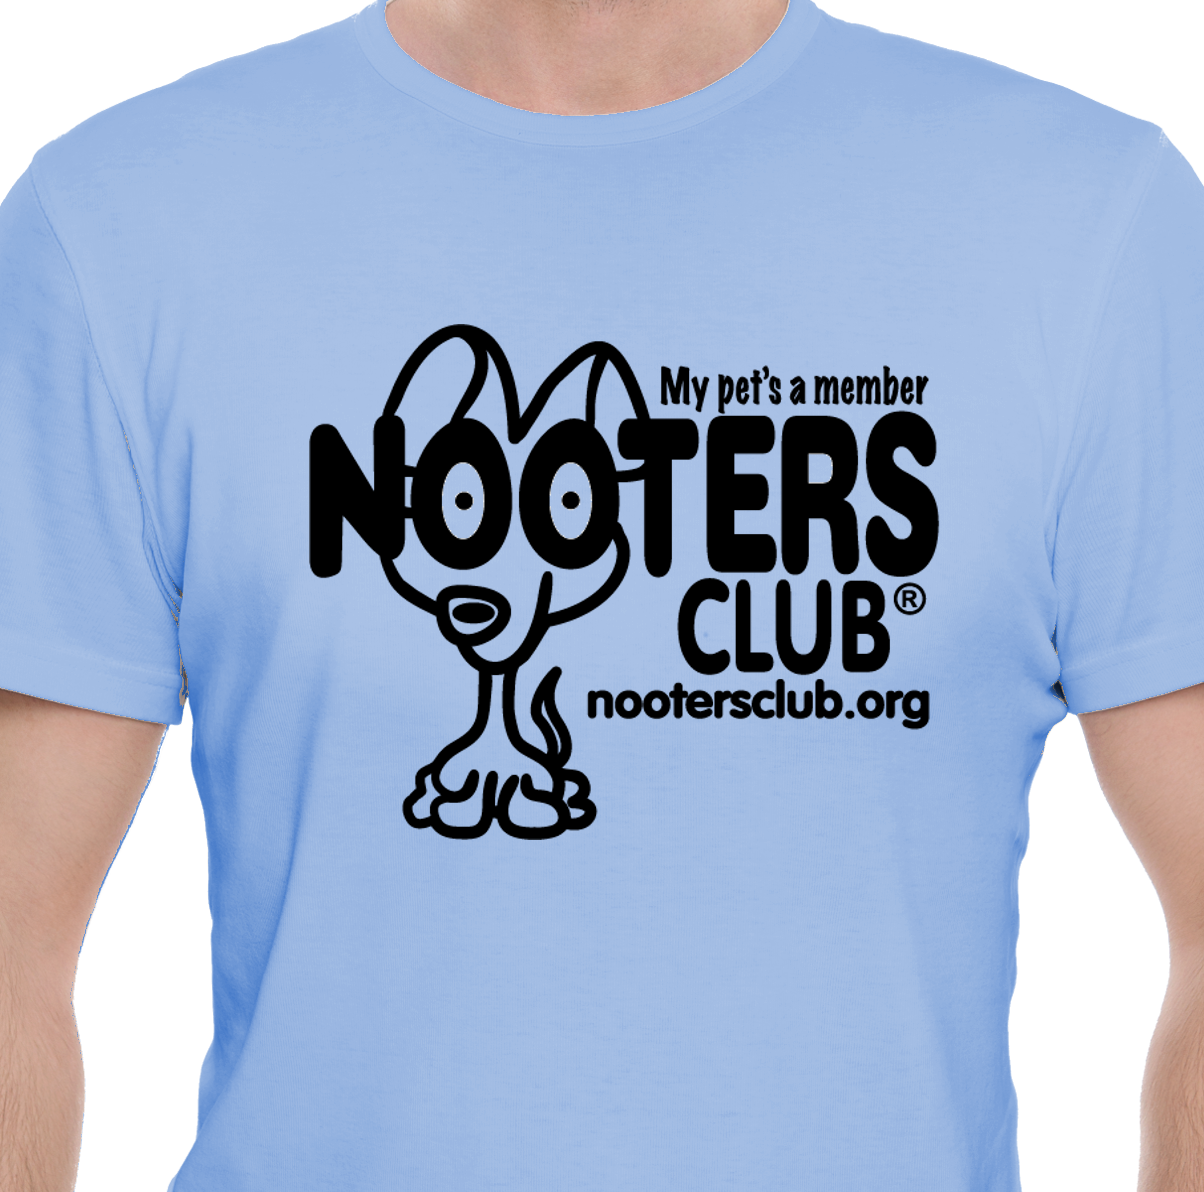 Nooters club will donate $5 from shirt sales to Fort Wayne Pit Bull Coalition!